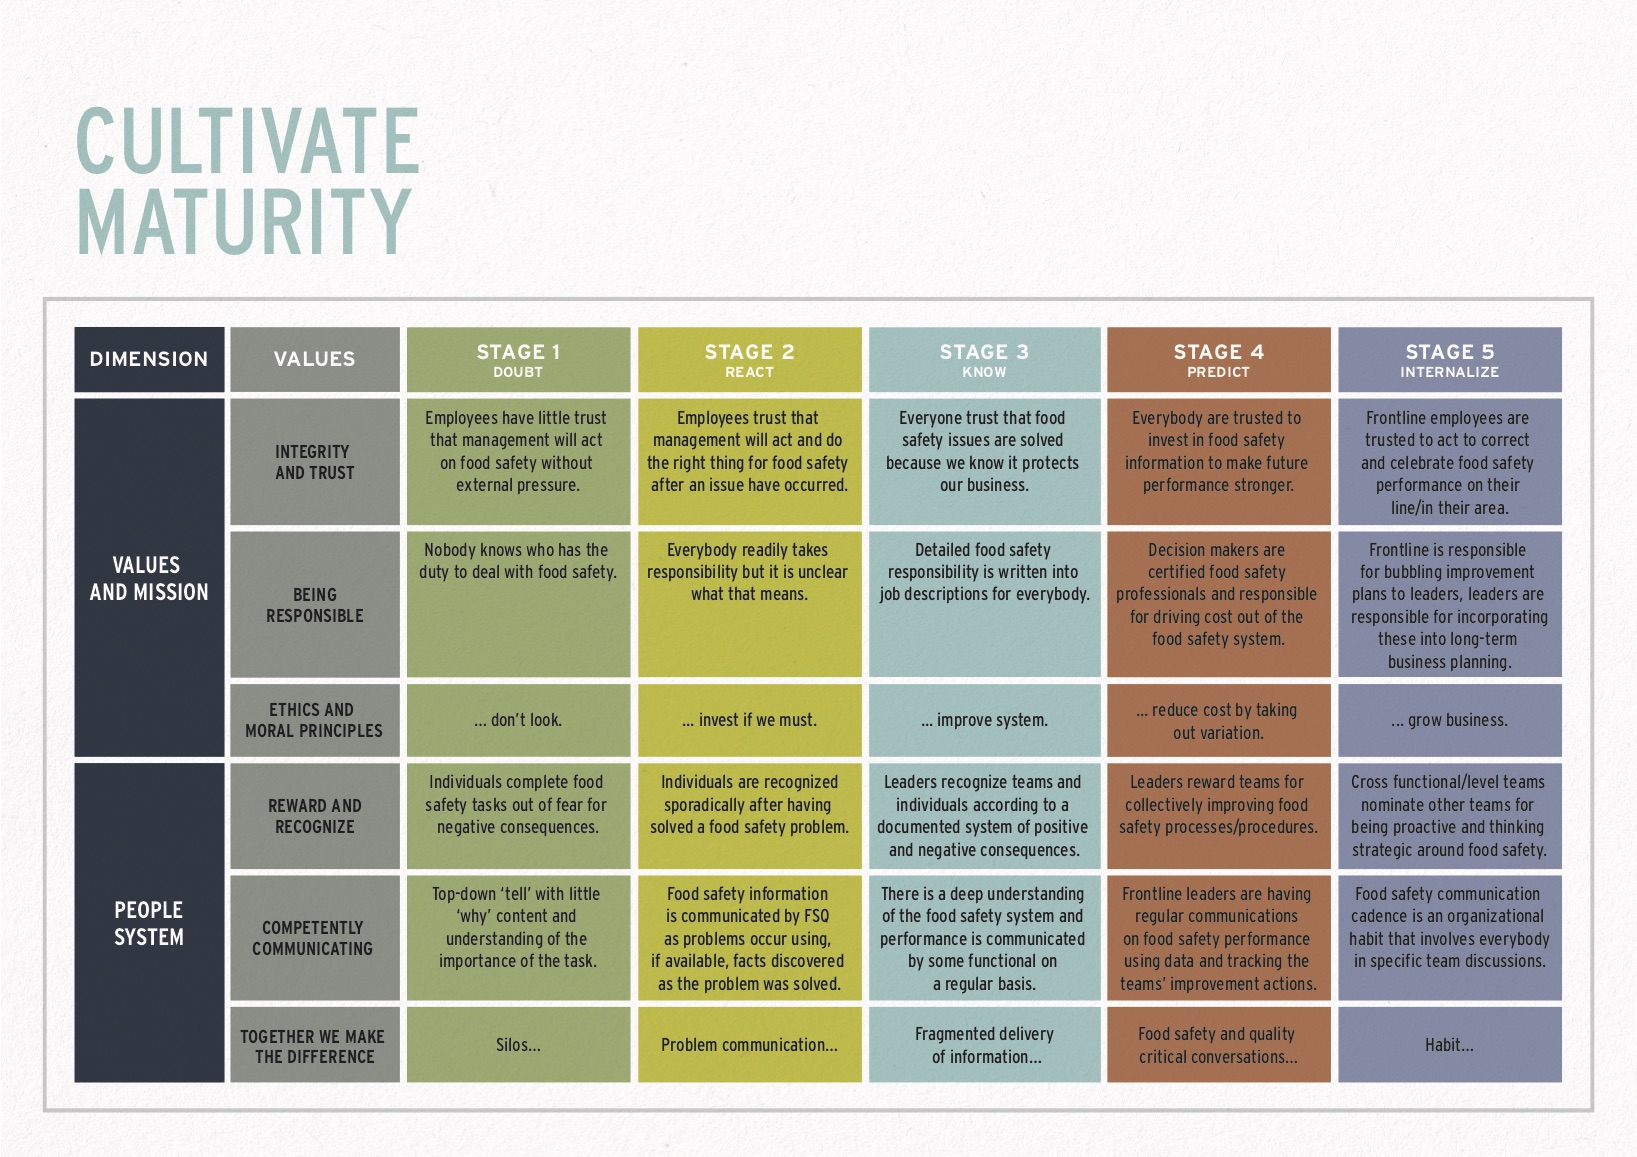 Cultivate Food Safety - Maturity Chart [1]